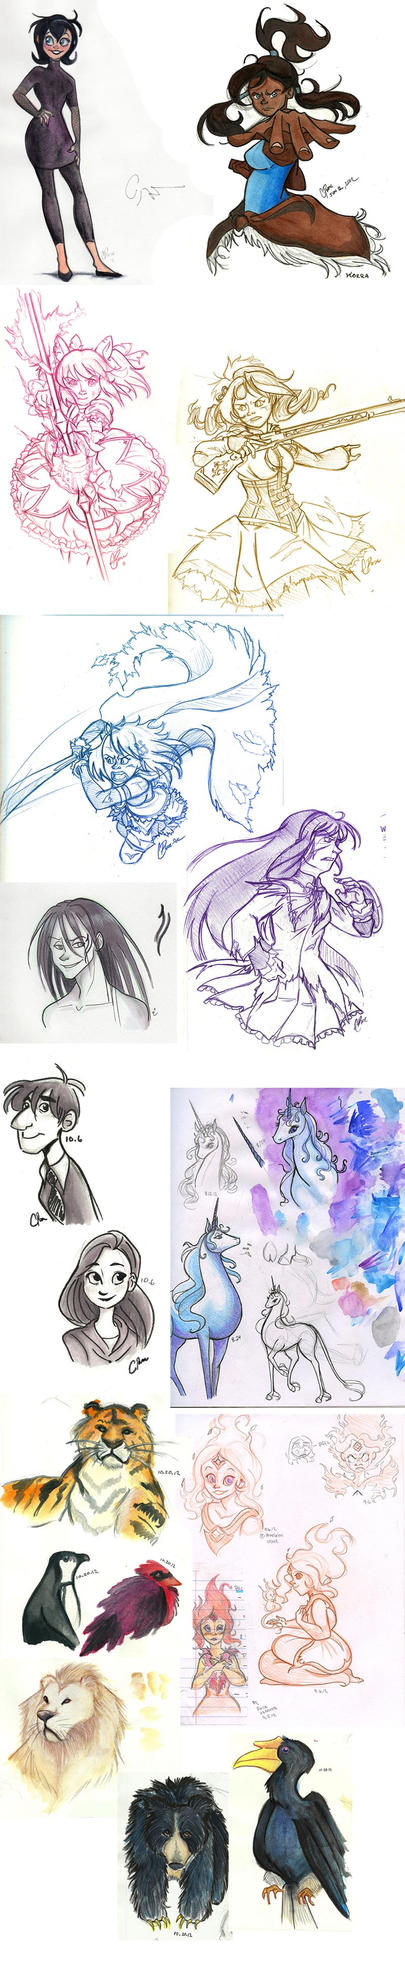 Sketch Dump 1 by neofeliss